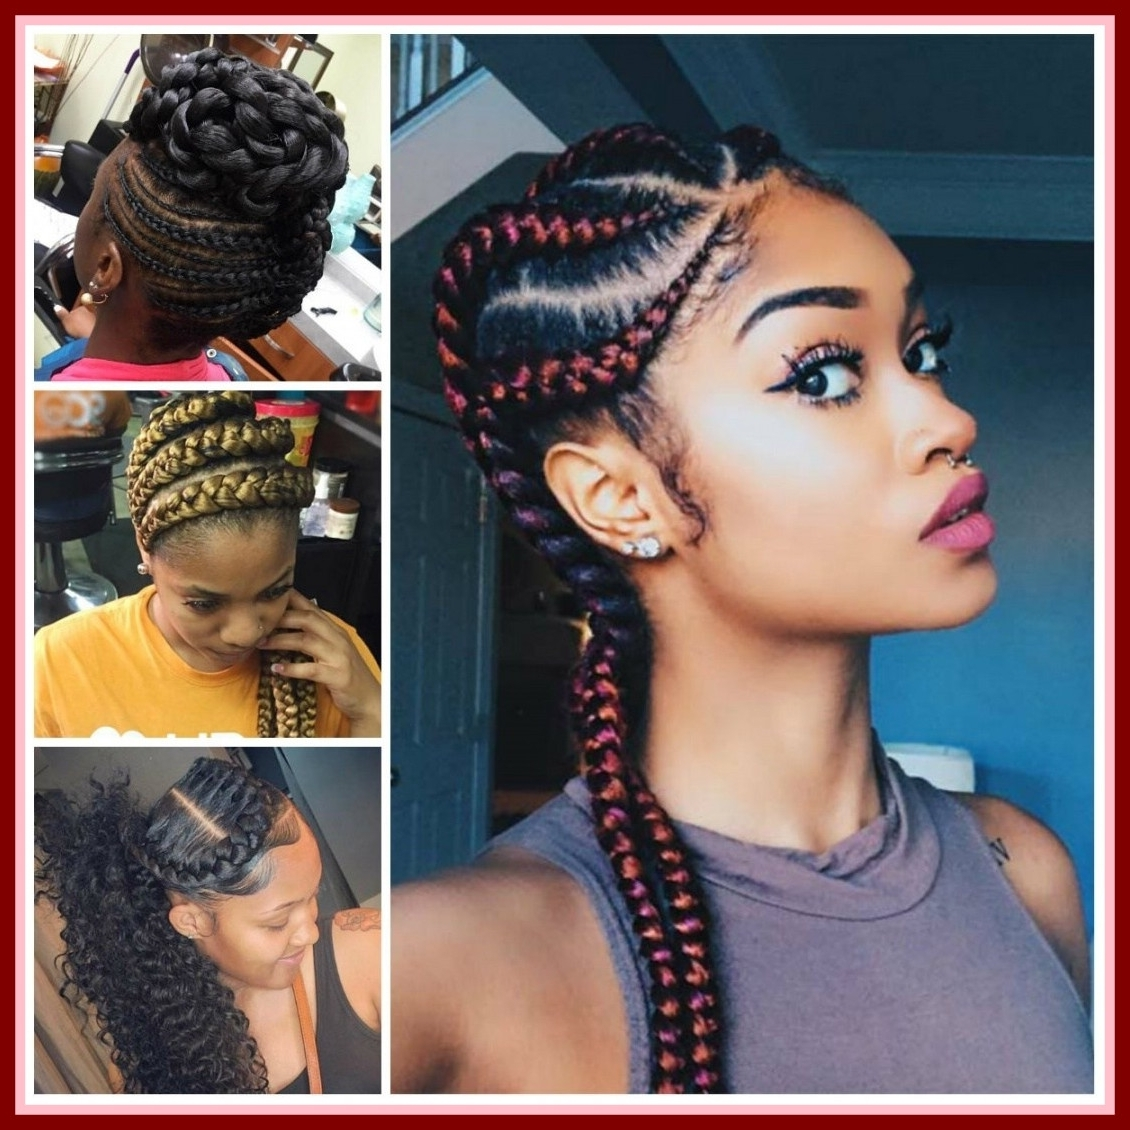 Astonishing African Braids Hairstyles The Big River Picture For Pertaining To Fashionable African Braided Hairstyles (View 5 of 15)